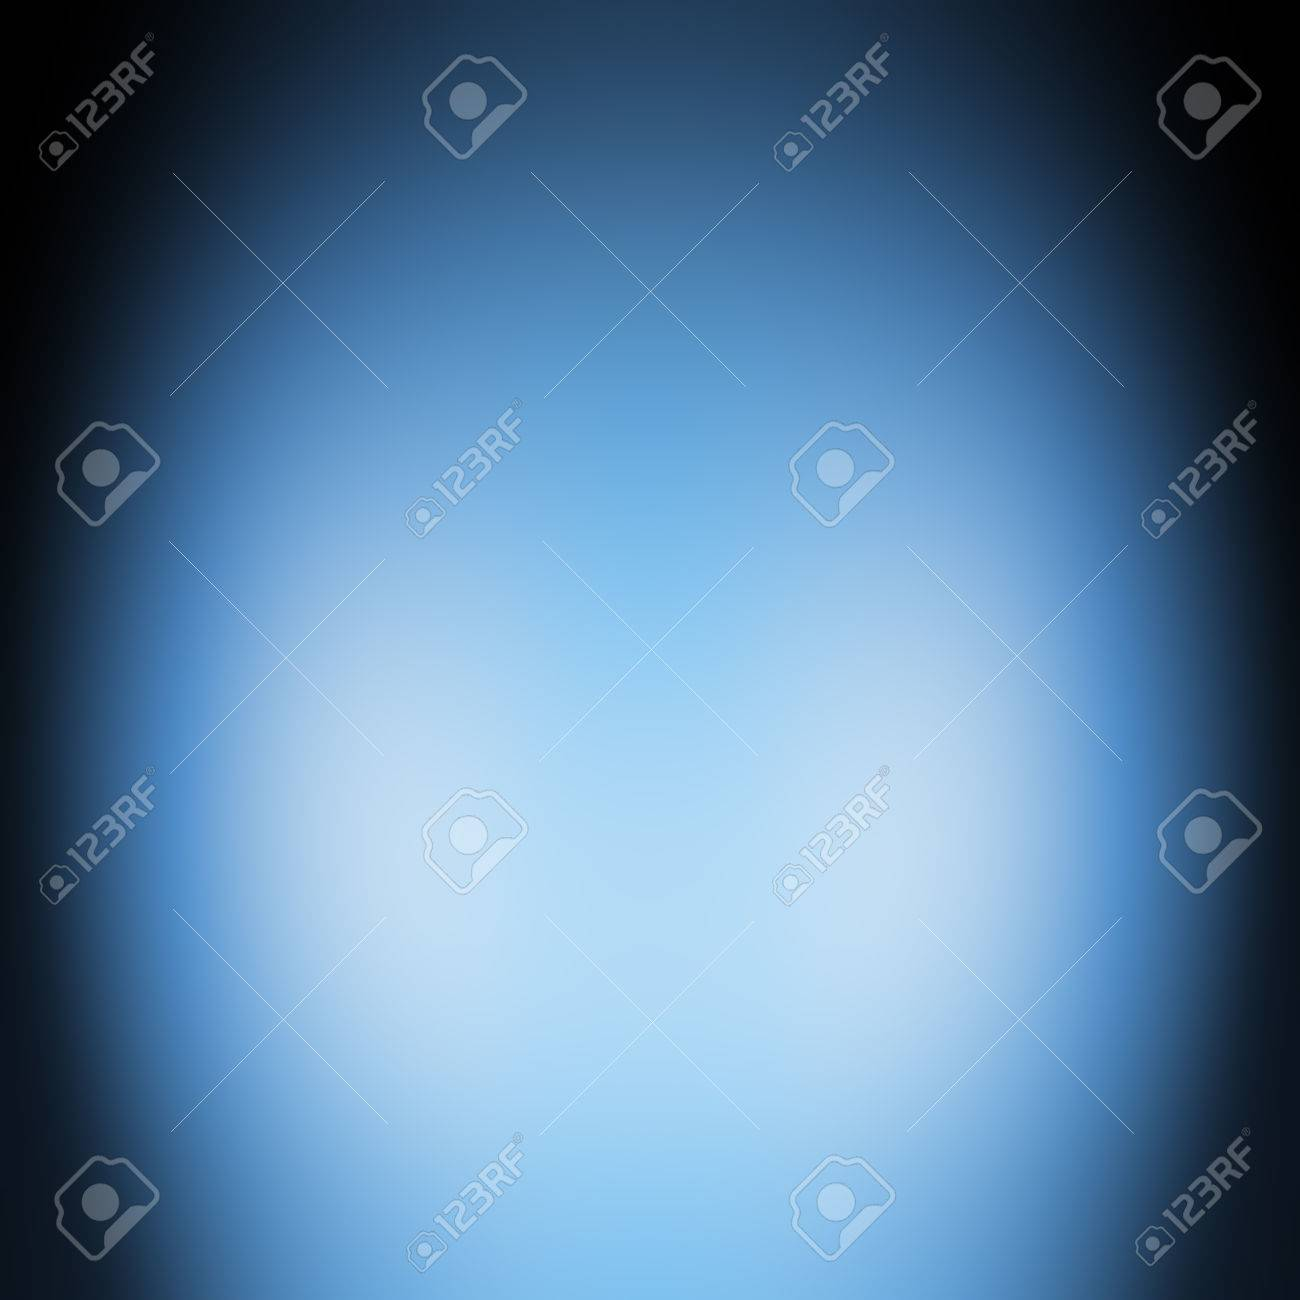 597caa73d0 light blue gradient background   blue radial gradient effect wallpaper Stock  Photo - 62306008